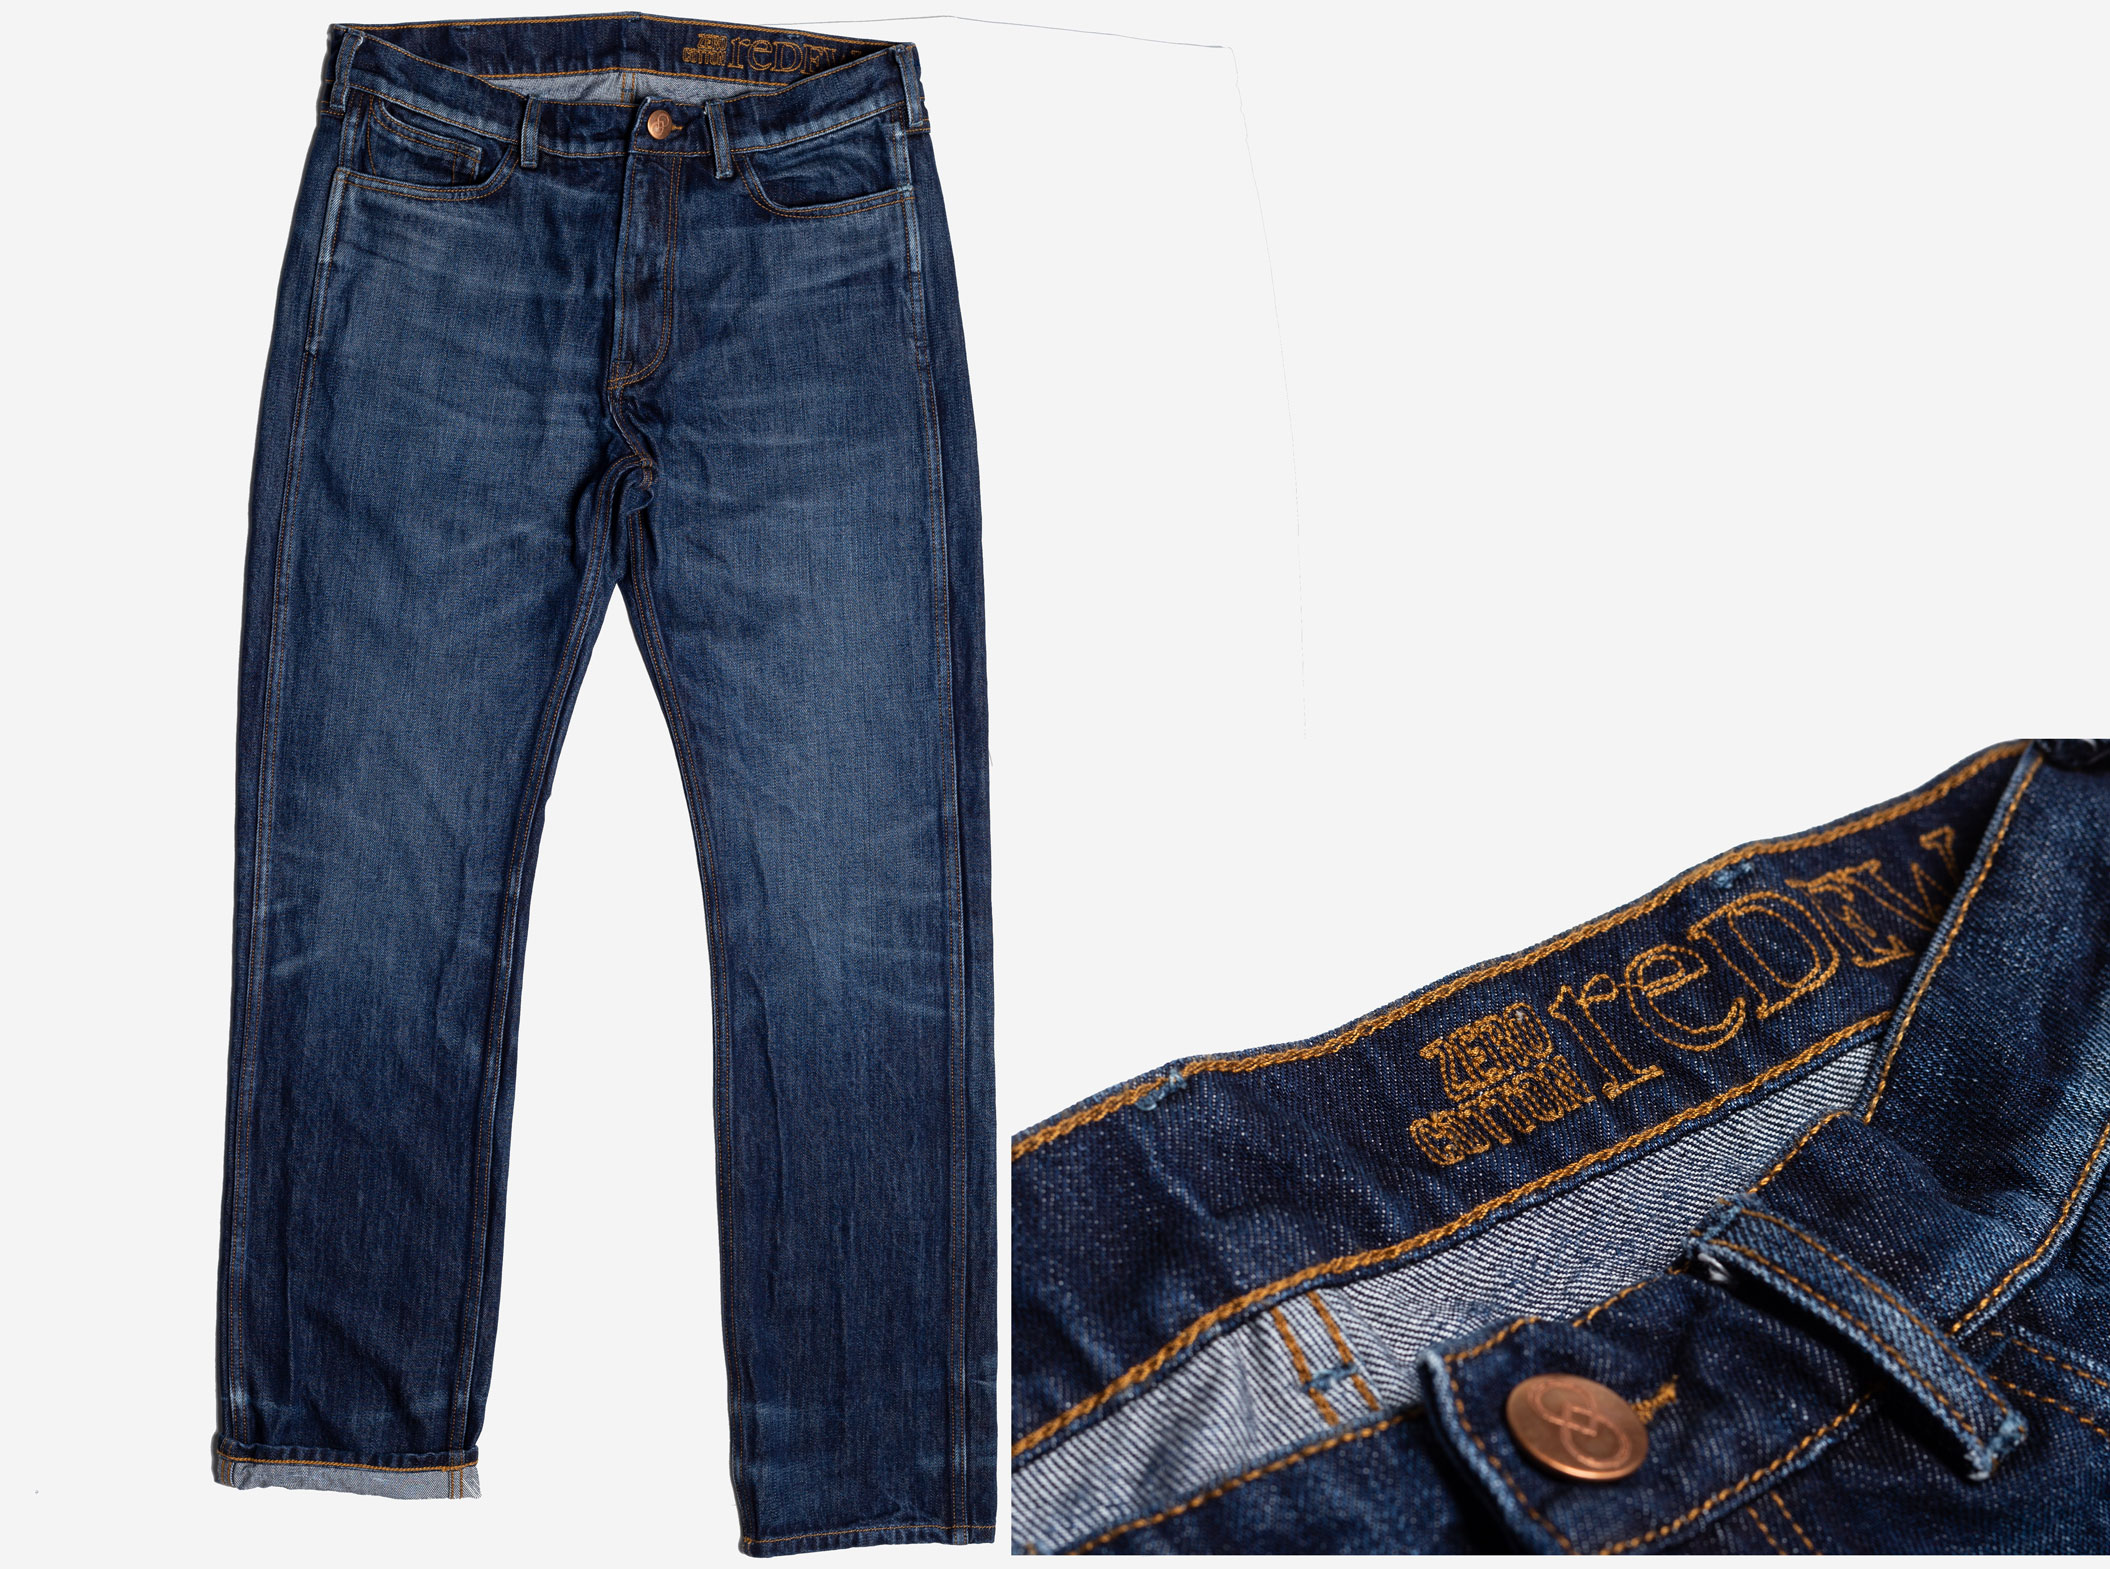 reDEW Zero Cotton jeans